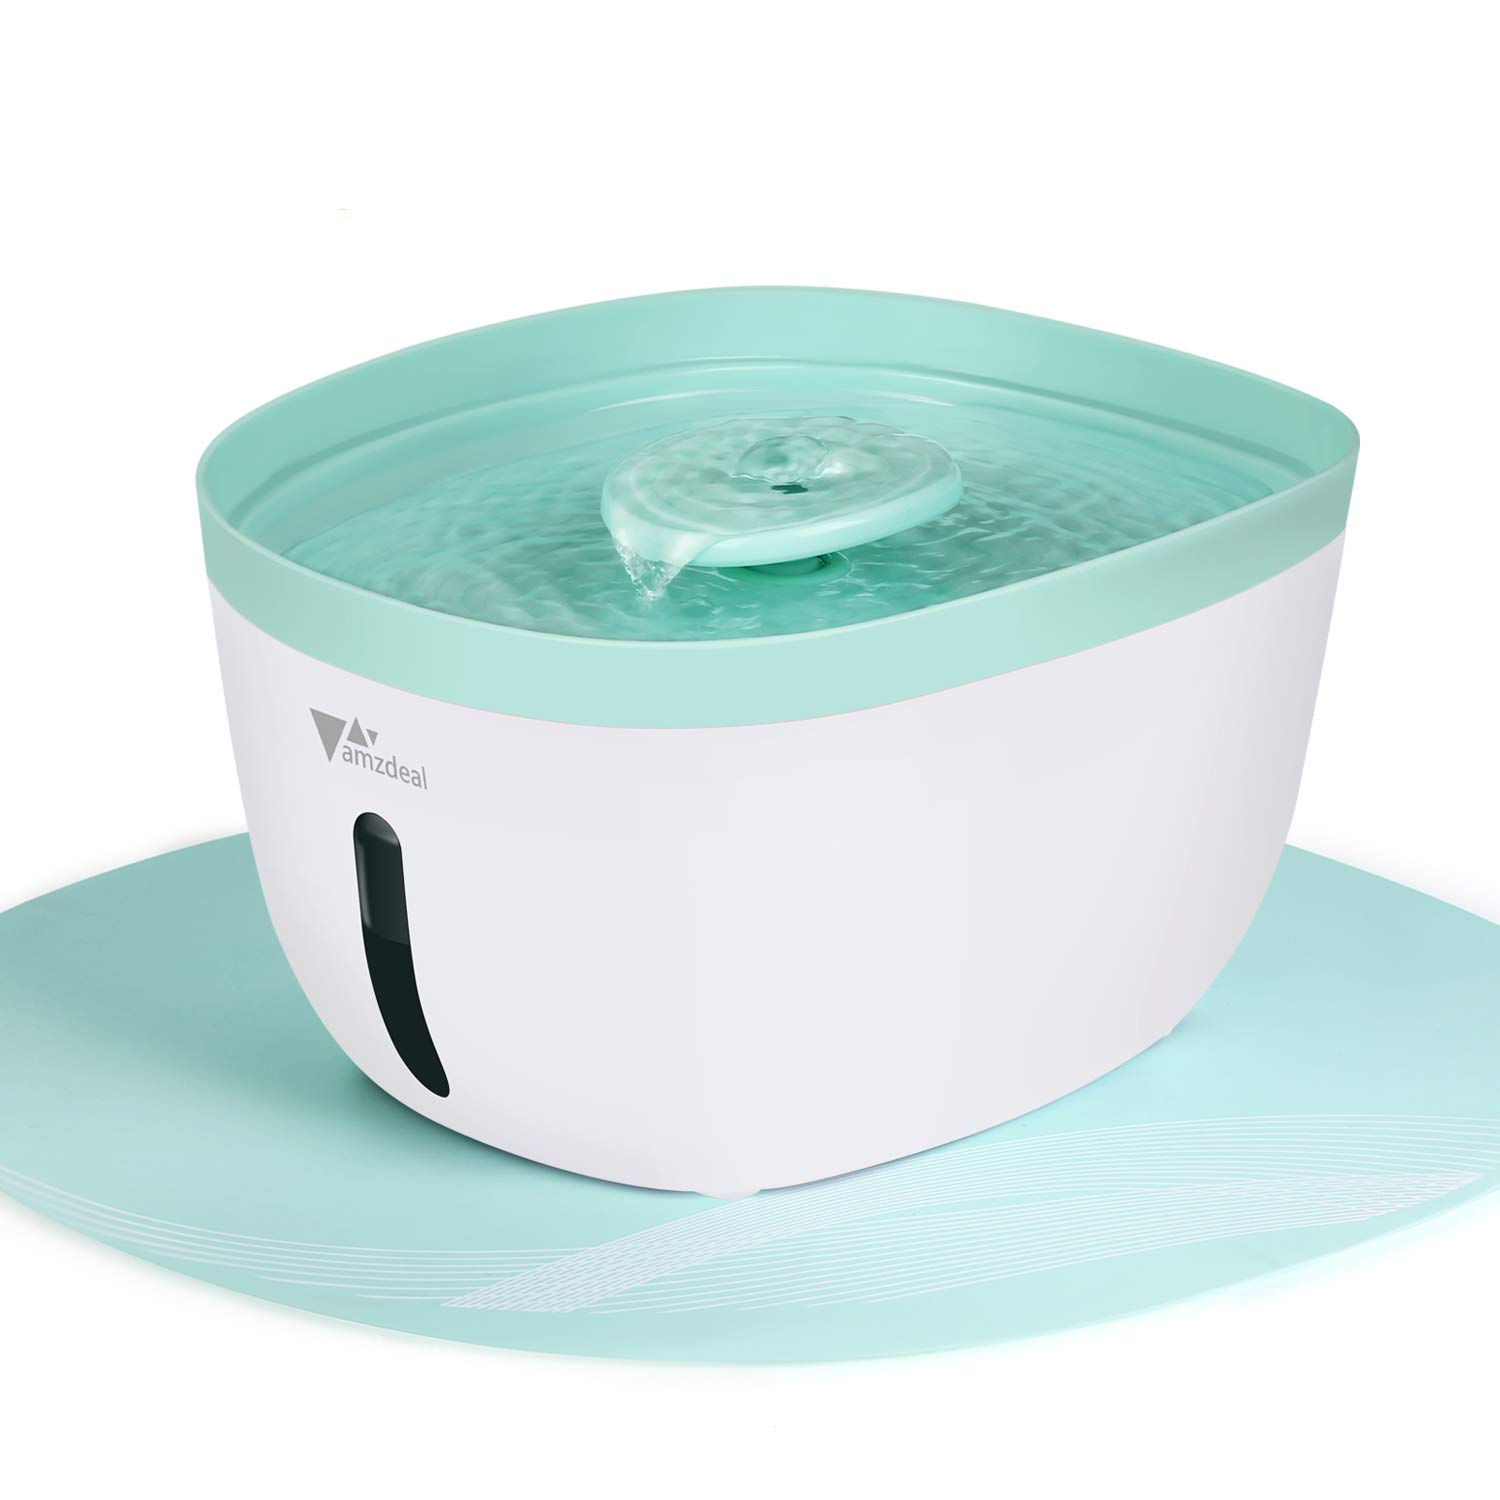 amzdeal Pet Fountain Cat Water Fountain Automatic Water Bowl 2.2L Cat Water Dispenser with Filter, Led Light, Quiet Pump, Silicone Mat, Pet Drinking Fountain for Cats and Dogs, BPA Free